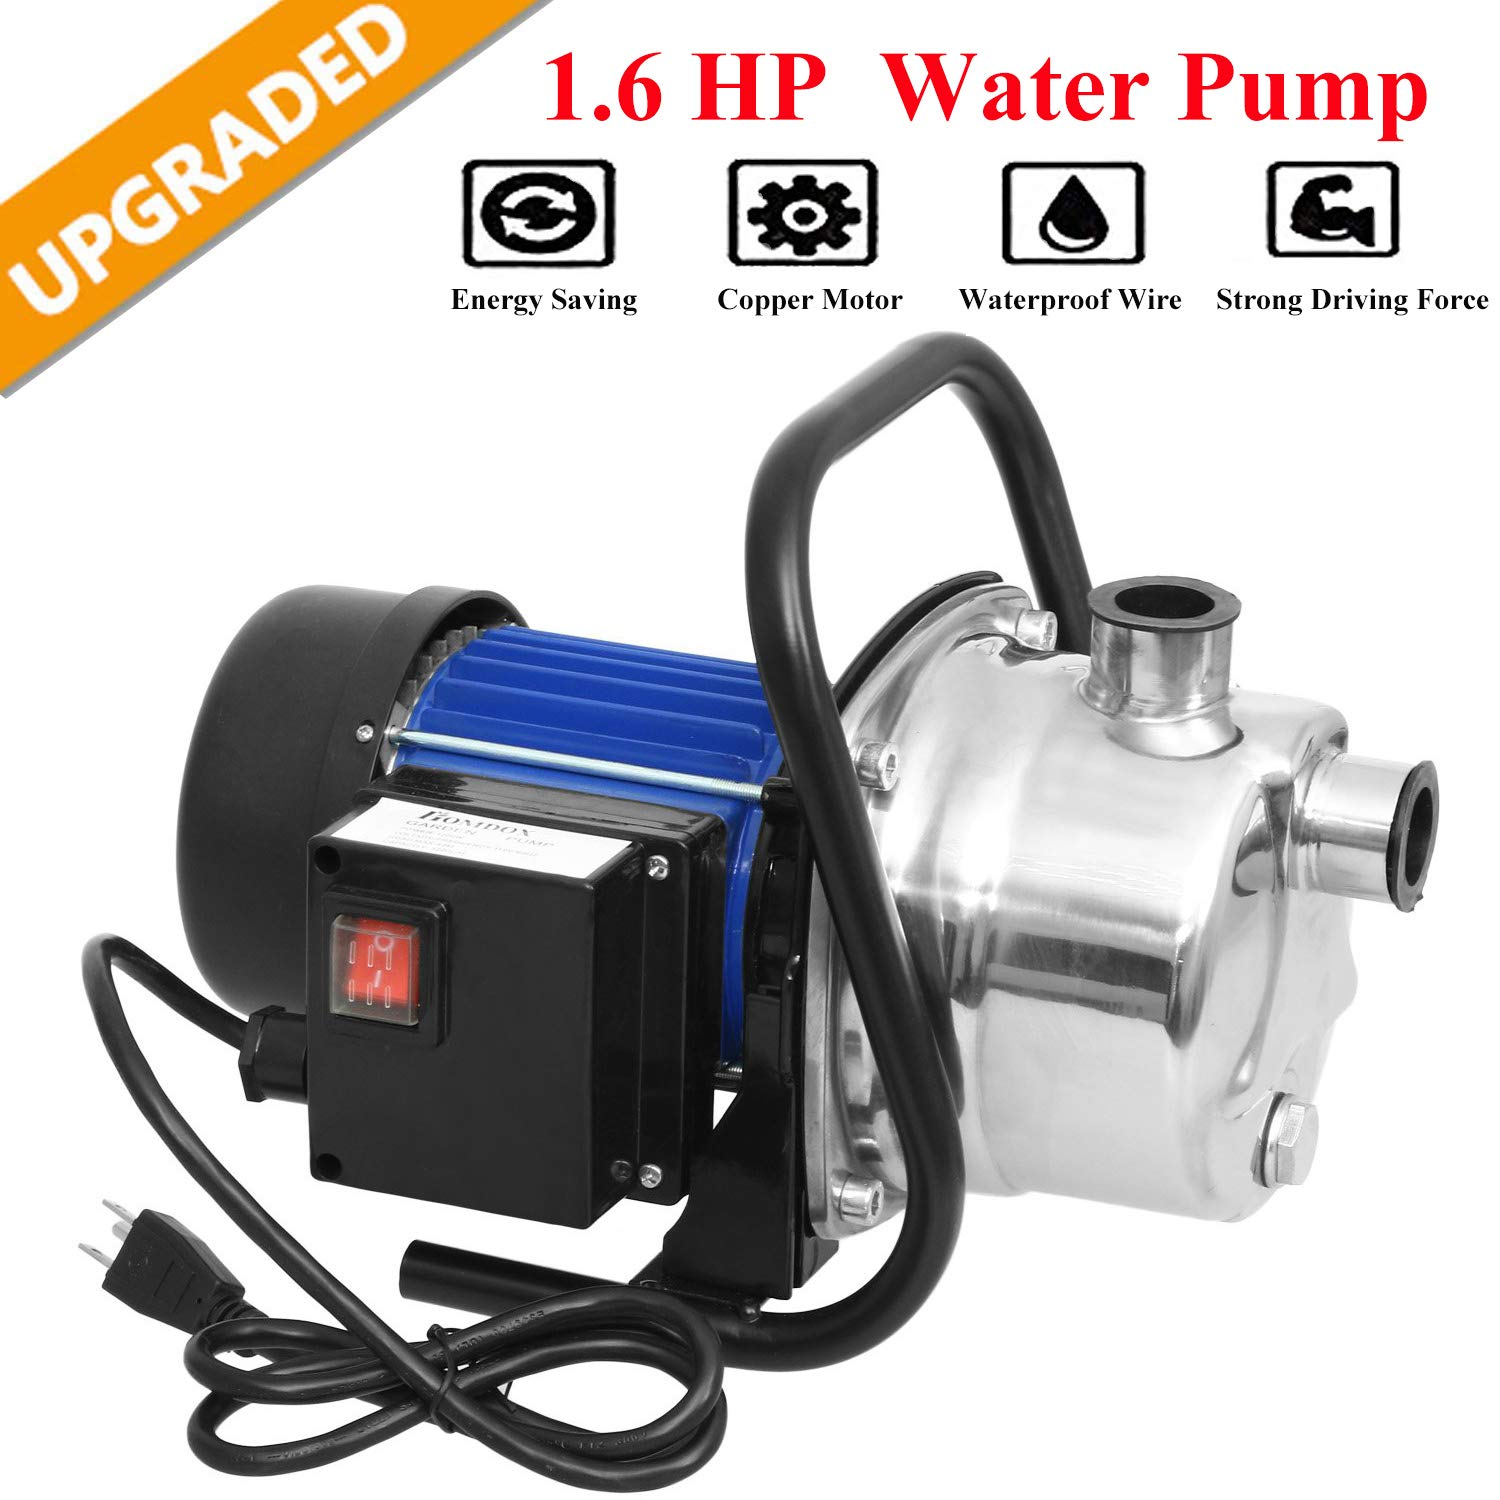 Hurbo 1.6HP Portable Stainless Steel Lawn Sprinkling Pump Water Pump Shallow Well Pump for Garden Irrigation and Pressure Booster by Hurbo